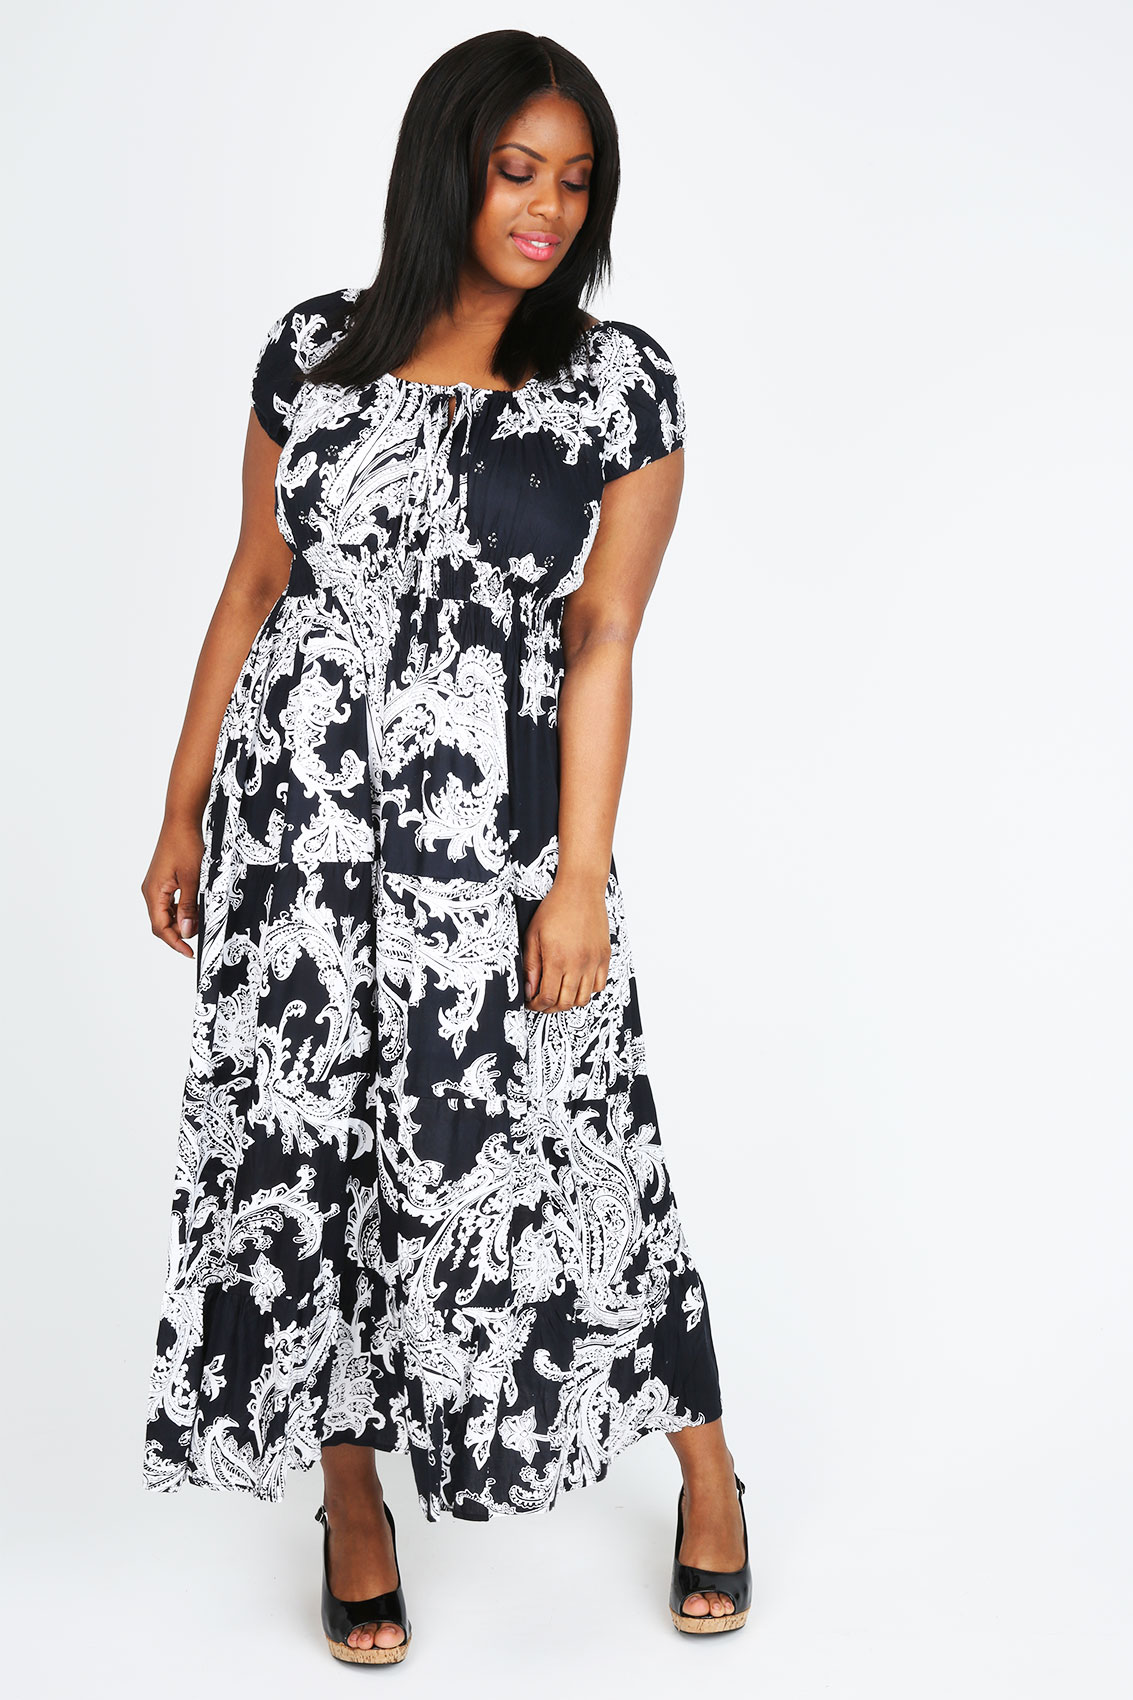 black and white floral print gypsy maxi dress plus size 14. Black Bedroom Furniture Sets. Home Design Ideas